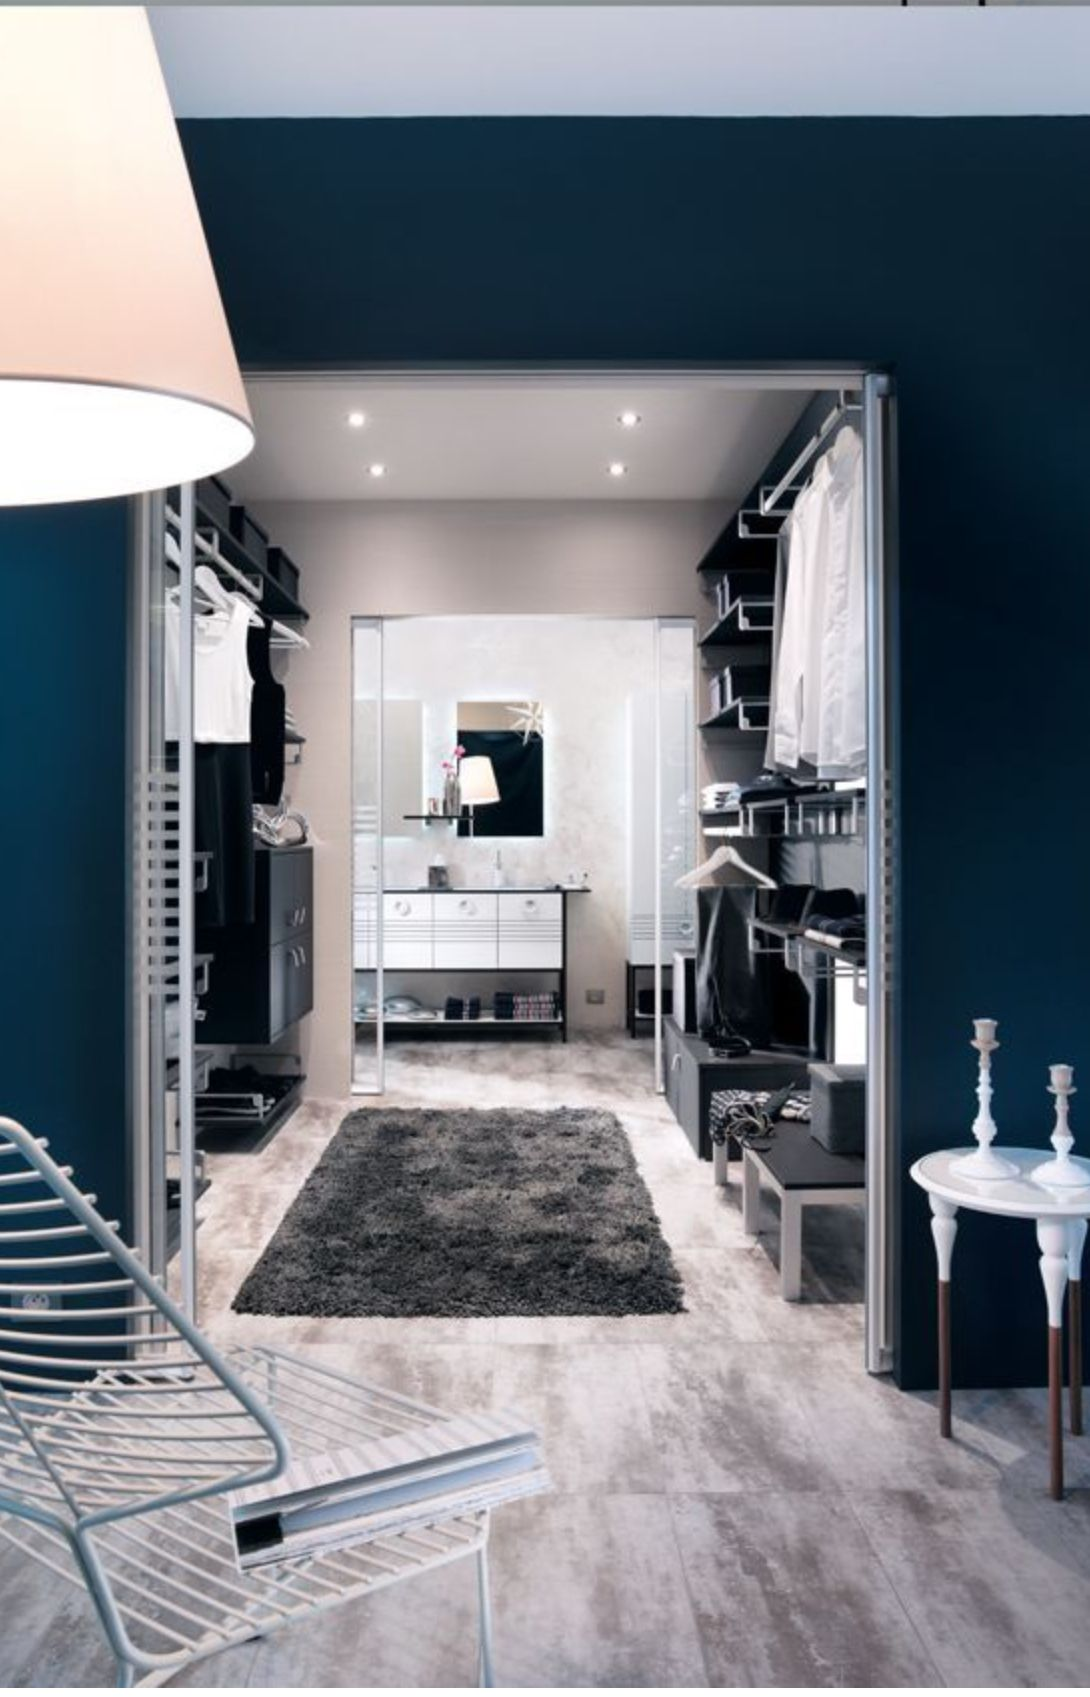 la suite parentale id ale chambre dressing et salle bains pinterest suite master. Black Bedroom Furniture Sets. Home Design Ideas